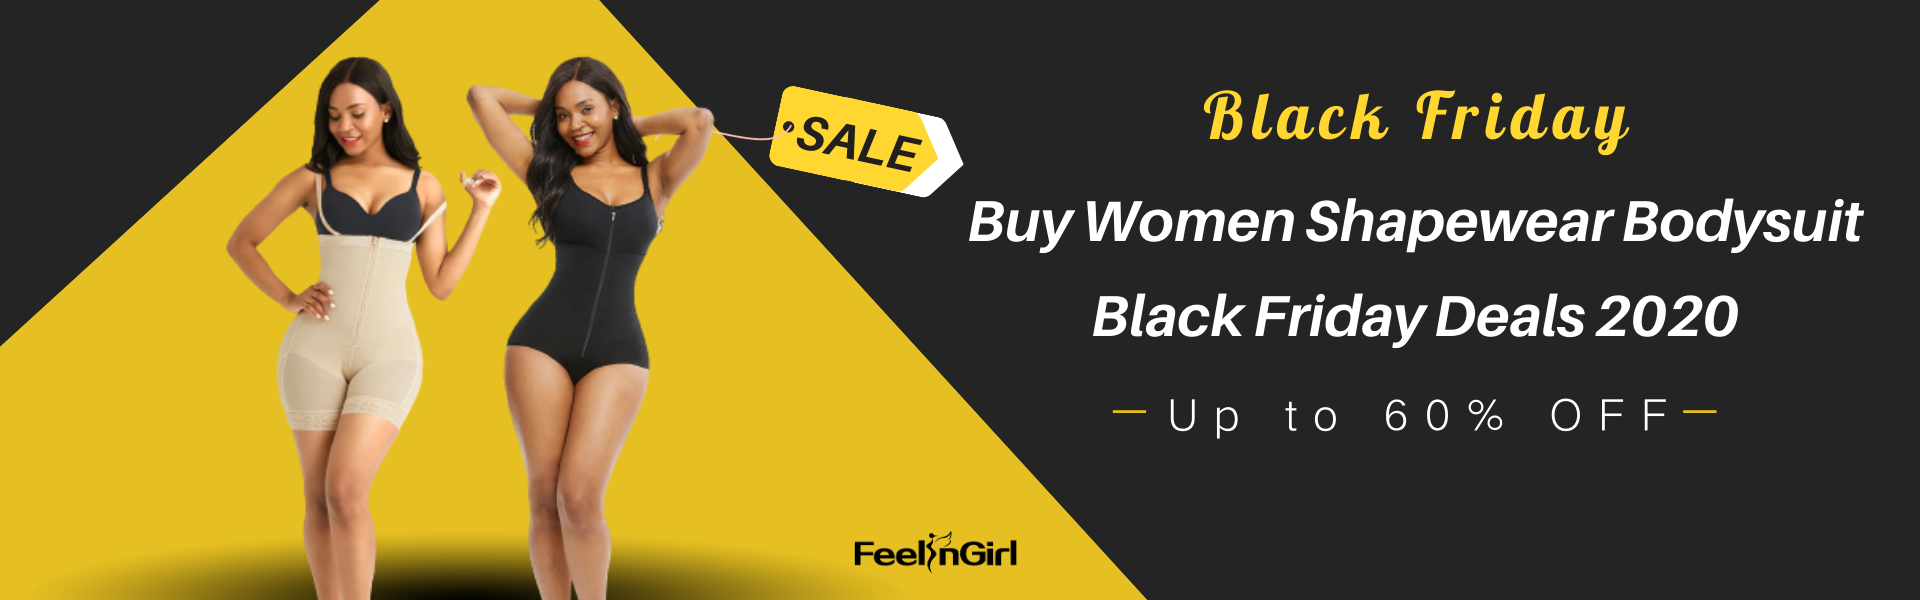 Buy Women Shapewear Bodysuit Black Friday Deals 2020